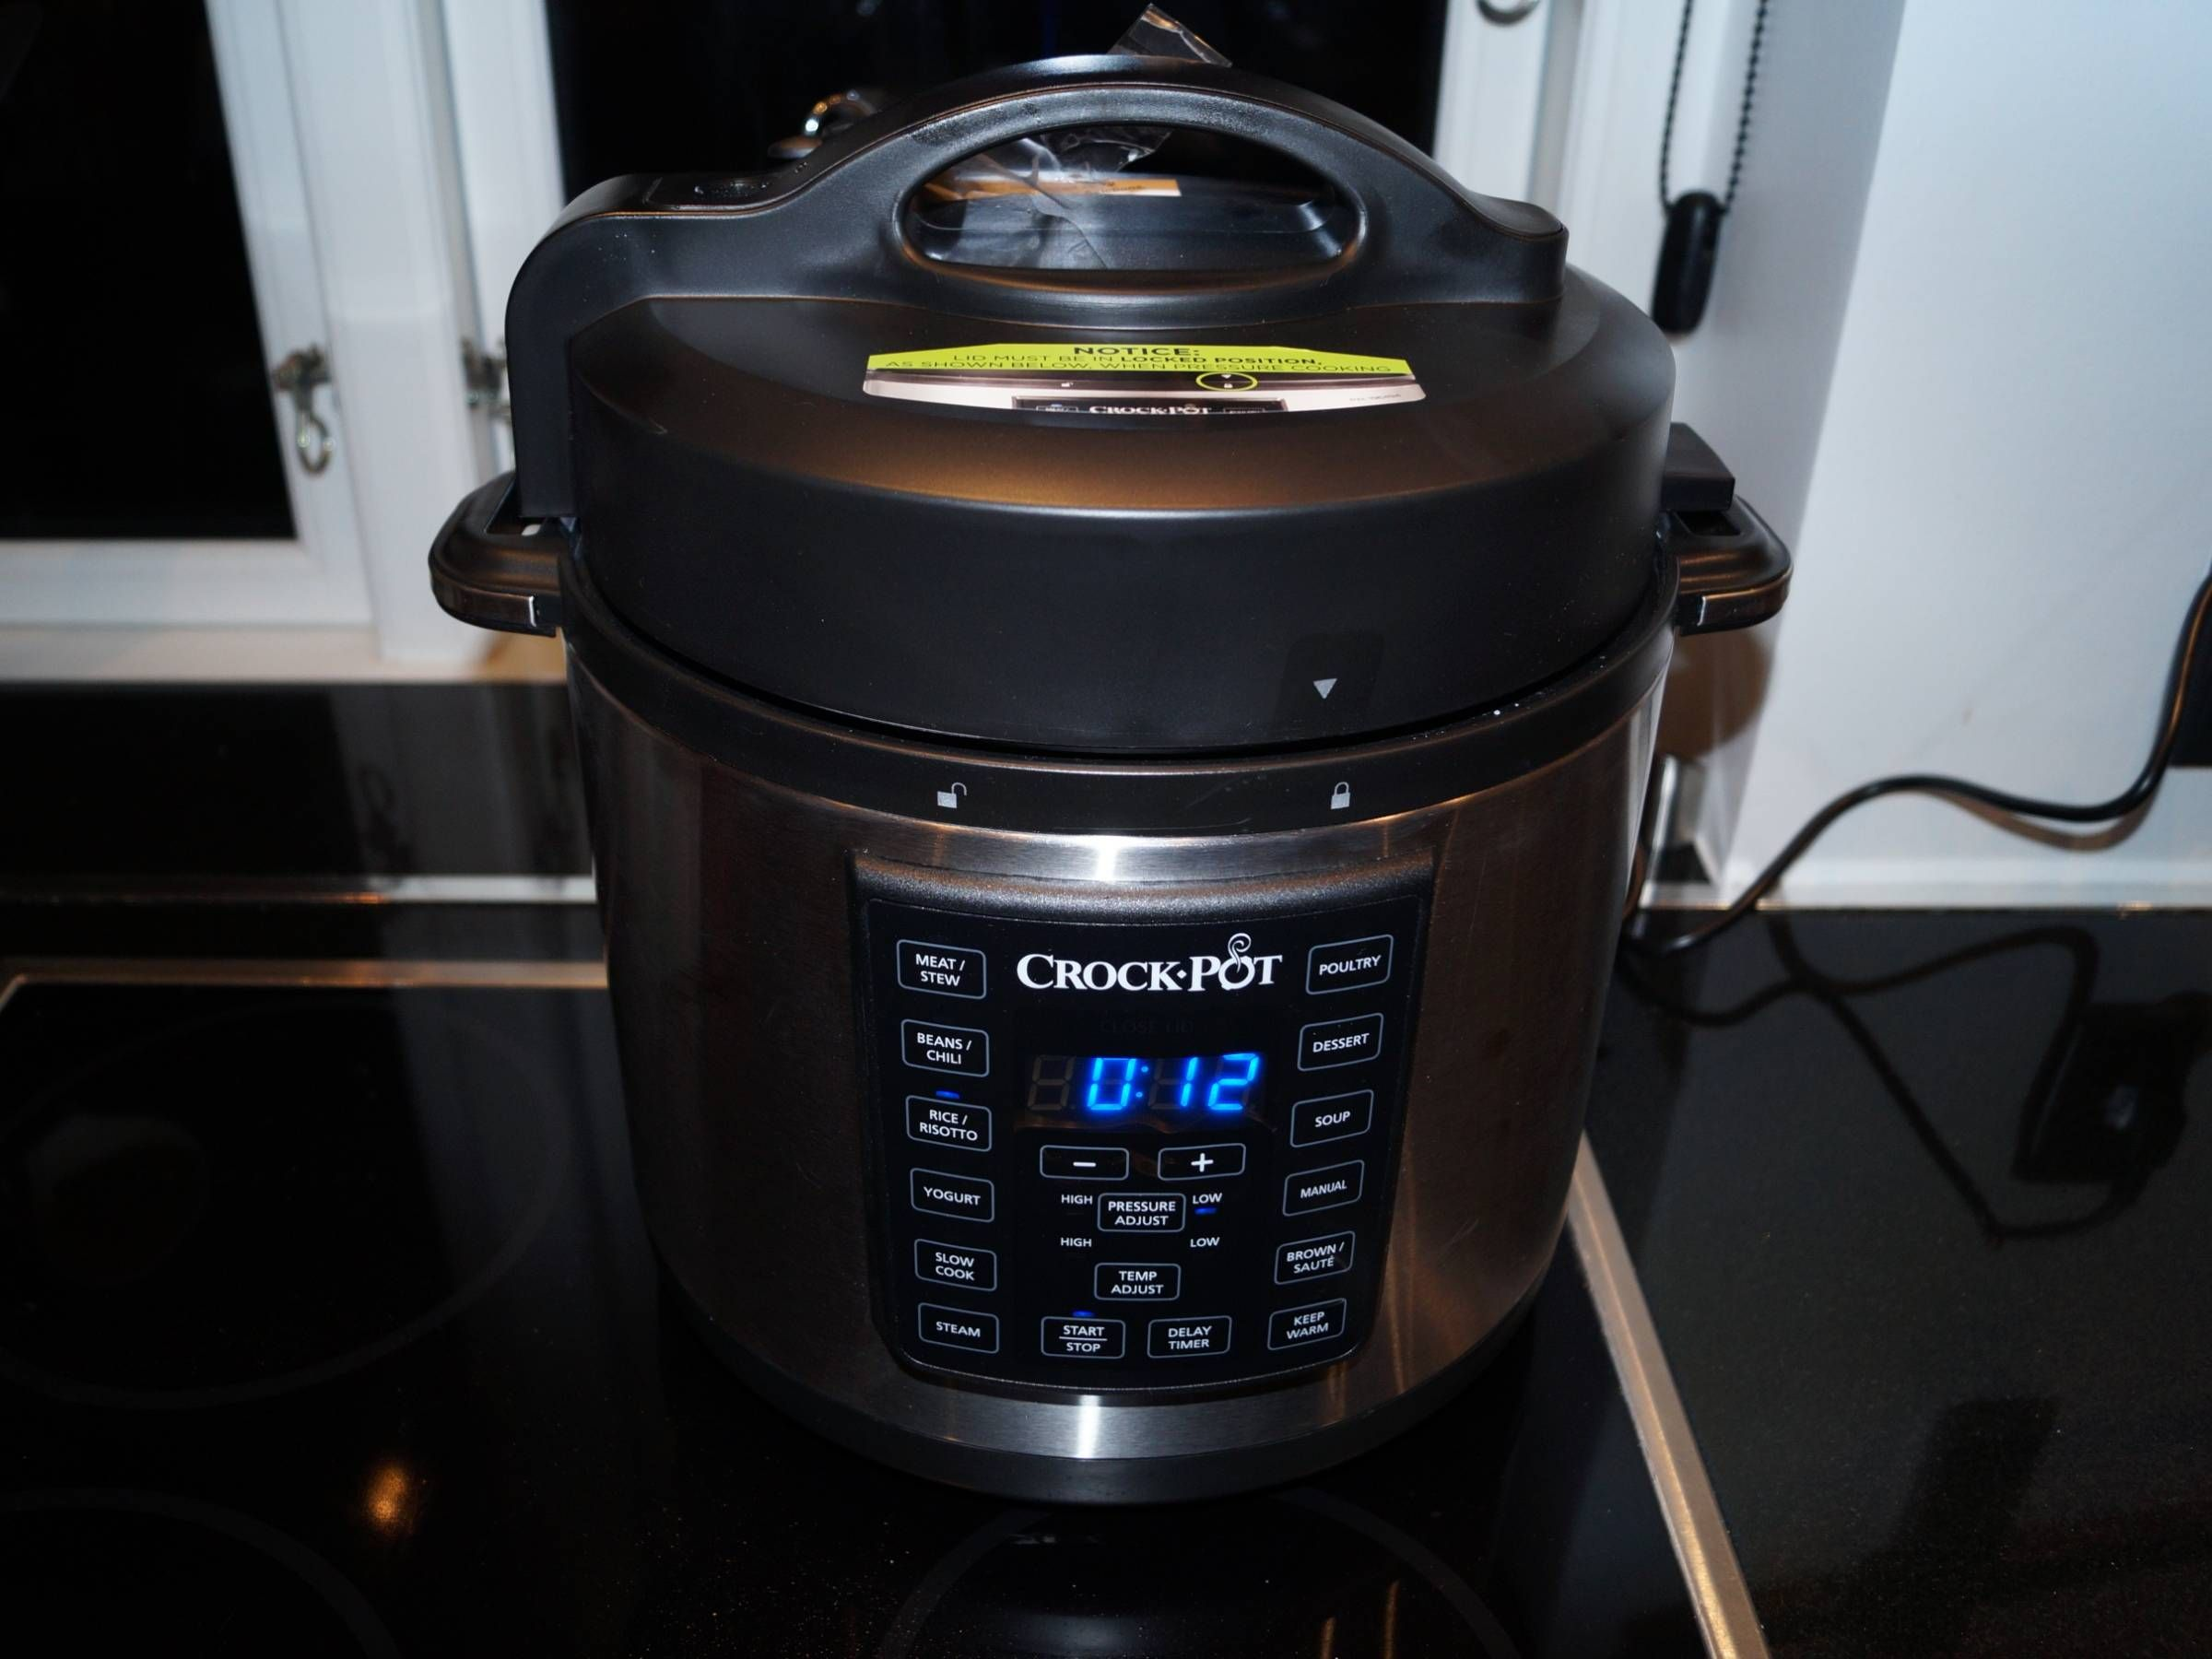 Crock-pot med damp og pres funktion